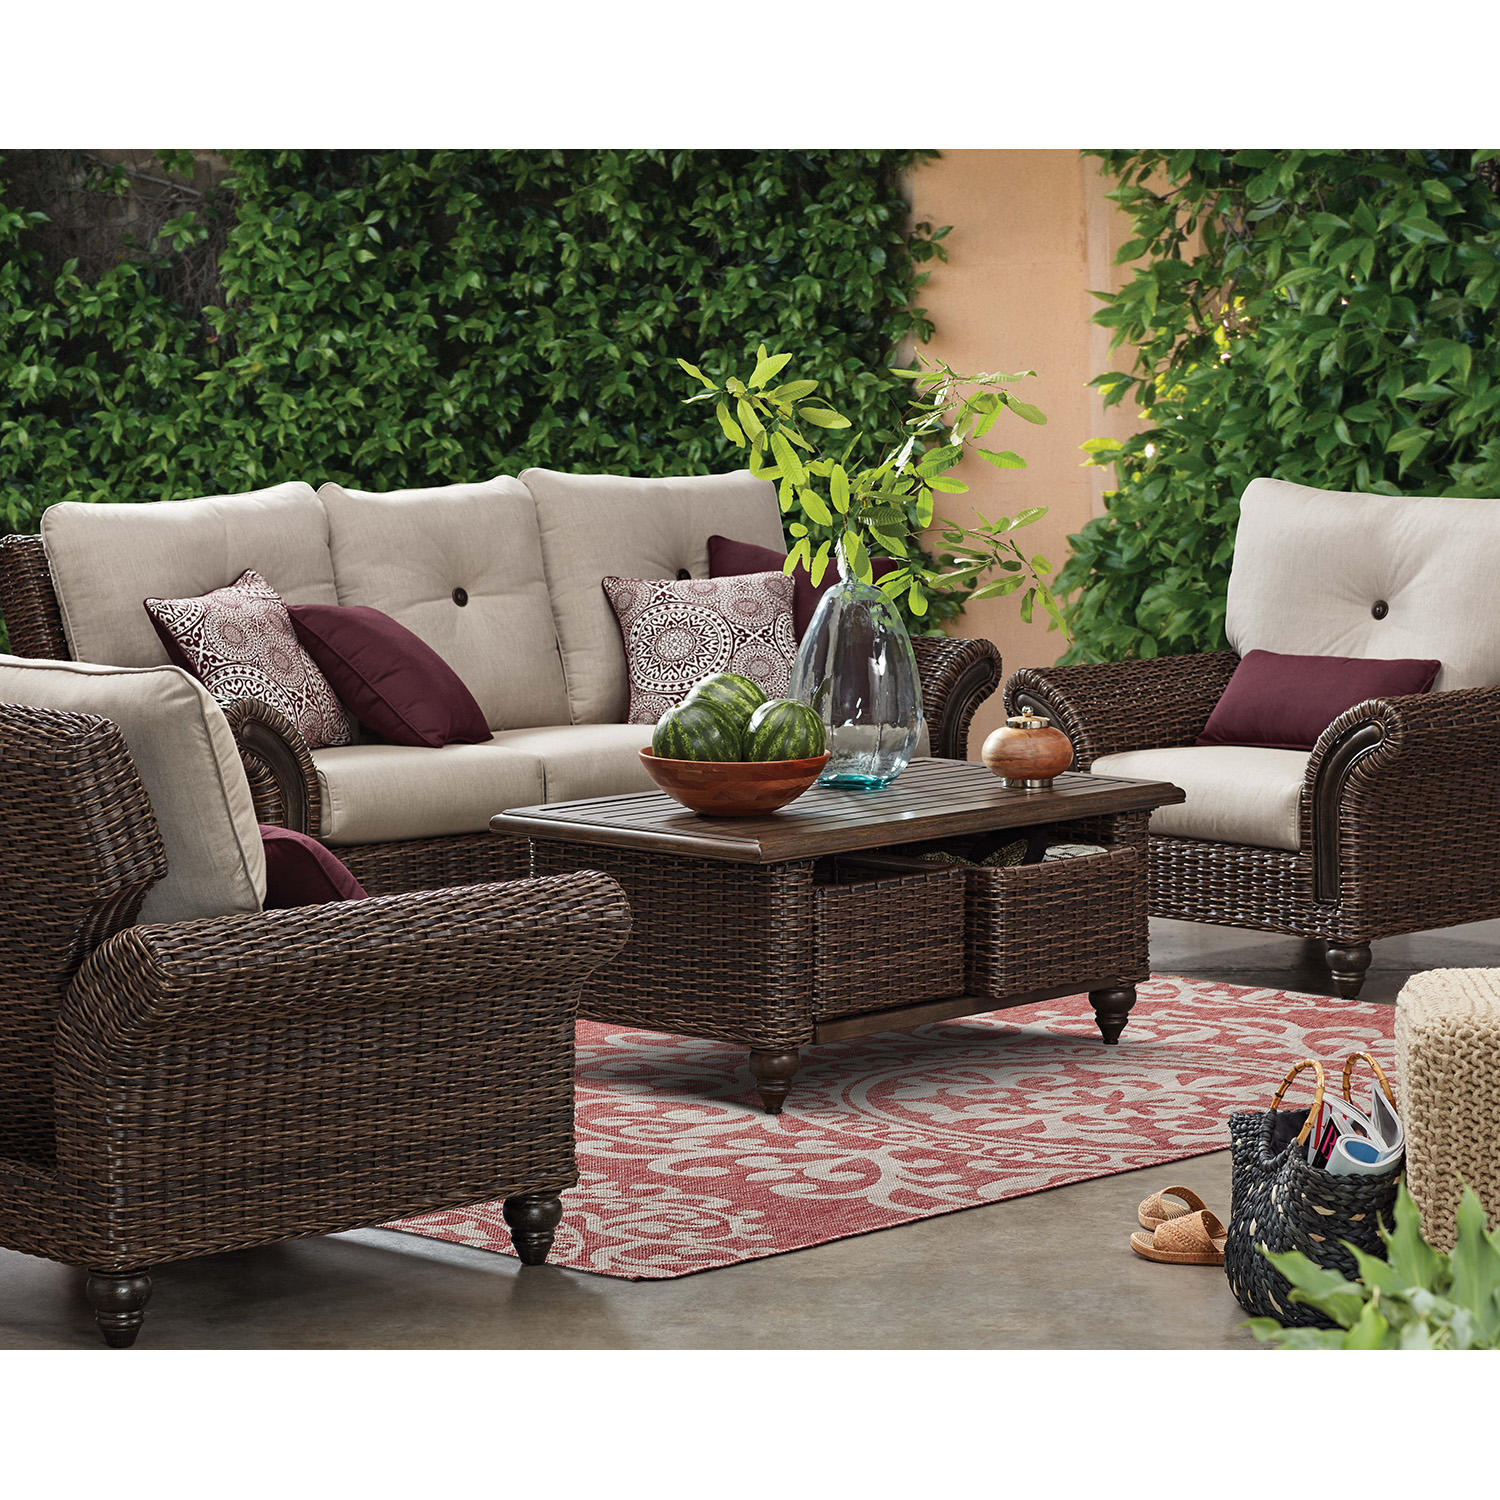 Member's Mark Mystic Ridge 6-Piece Deep Seating Set (Brown)